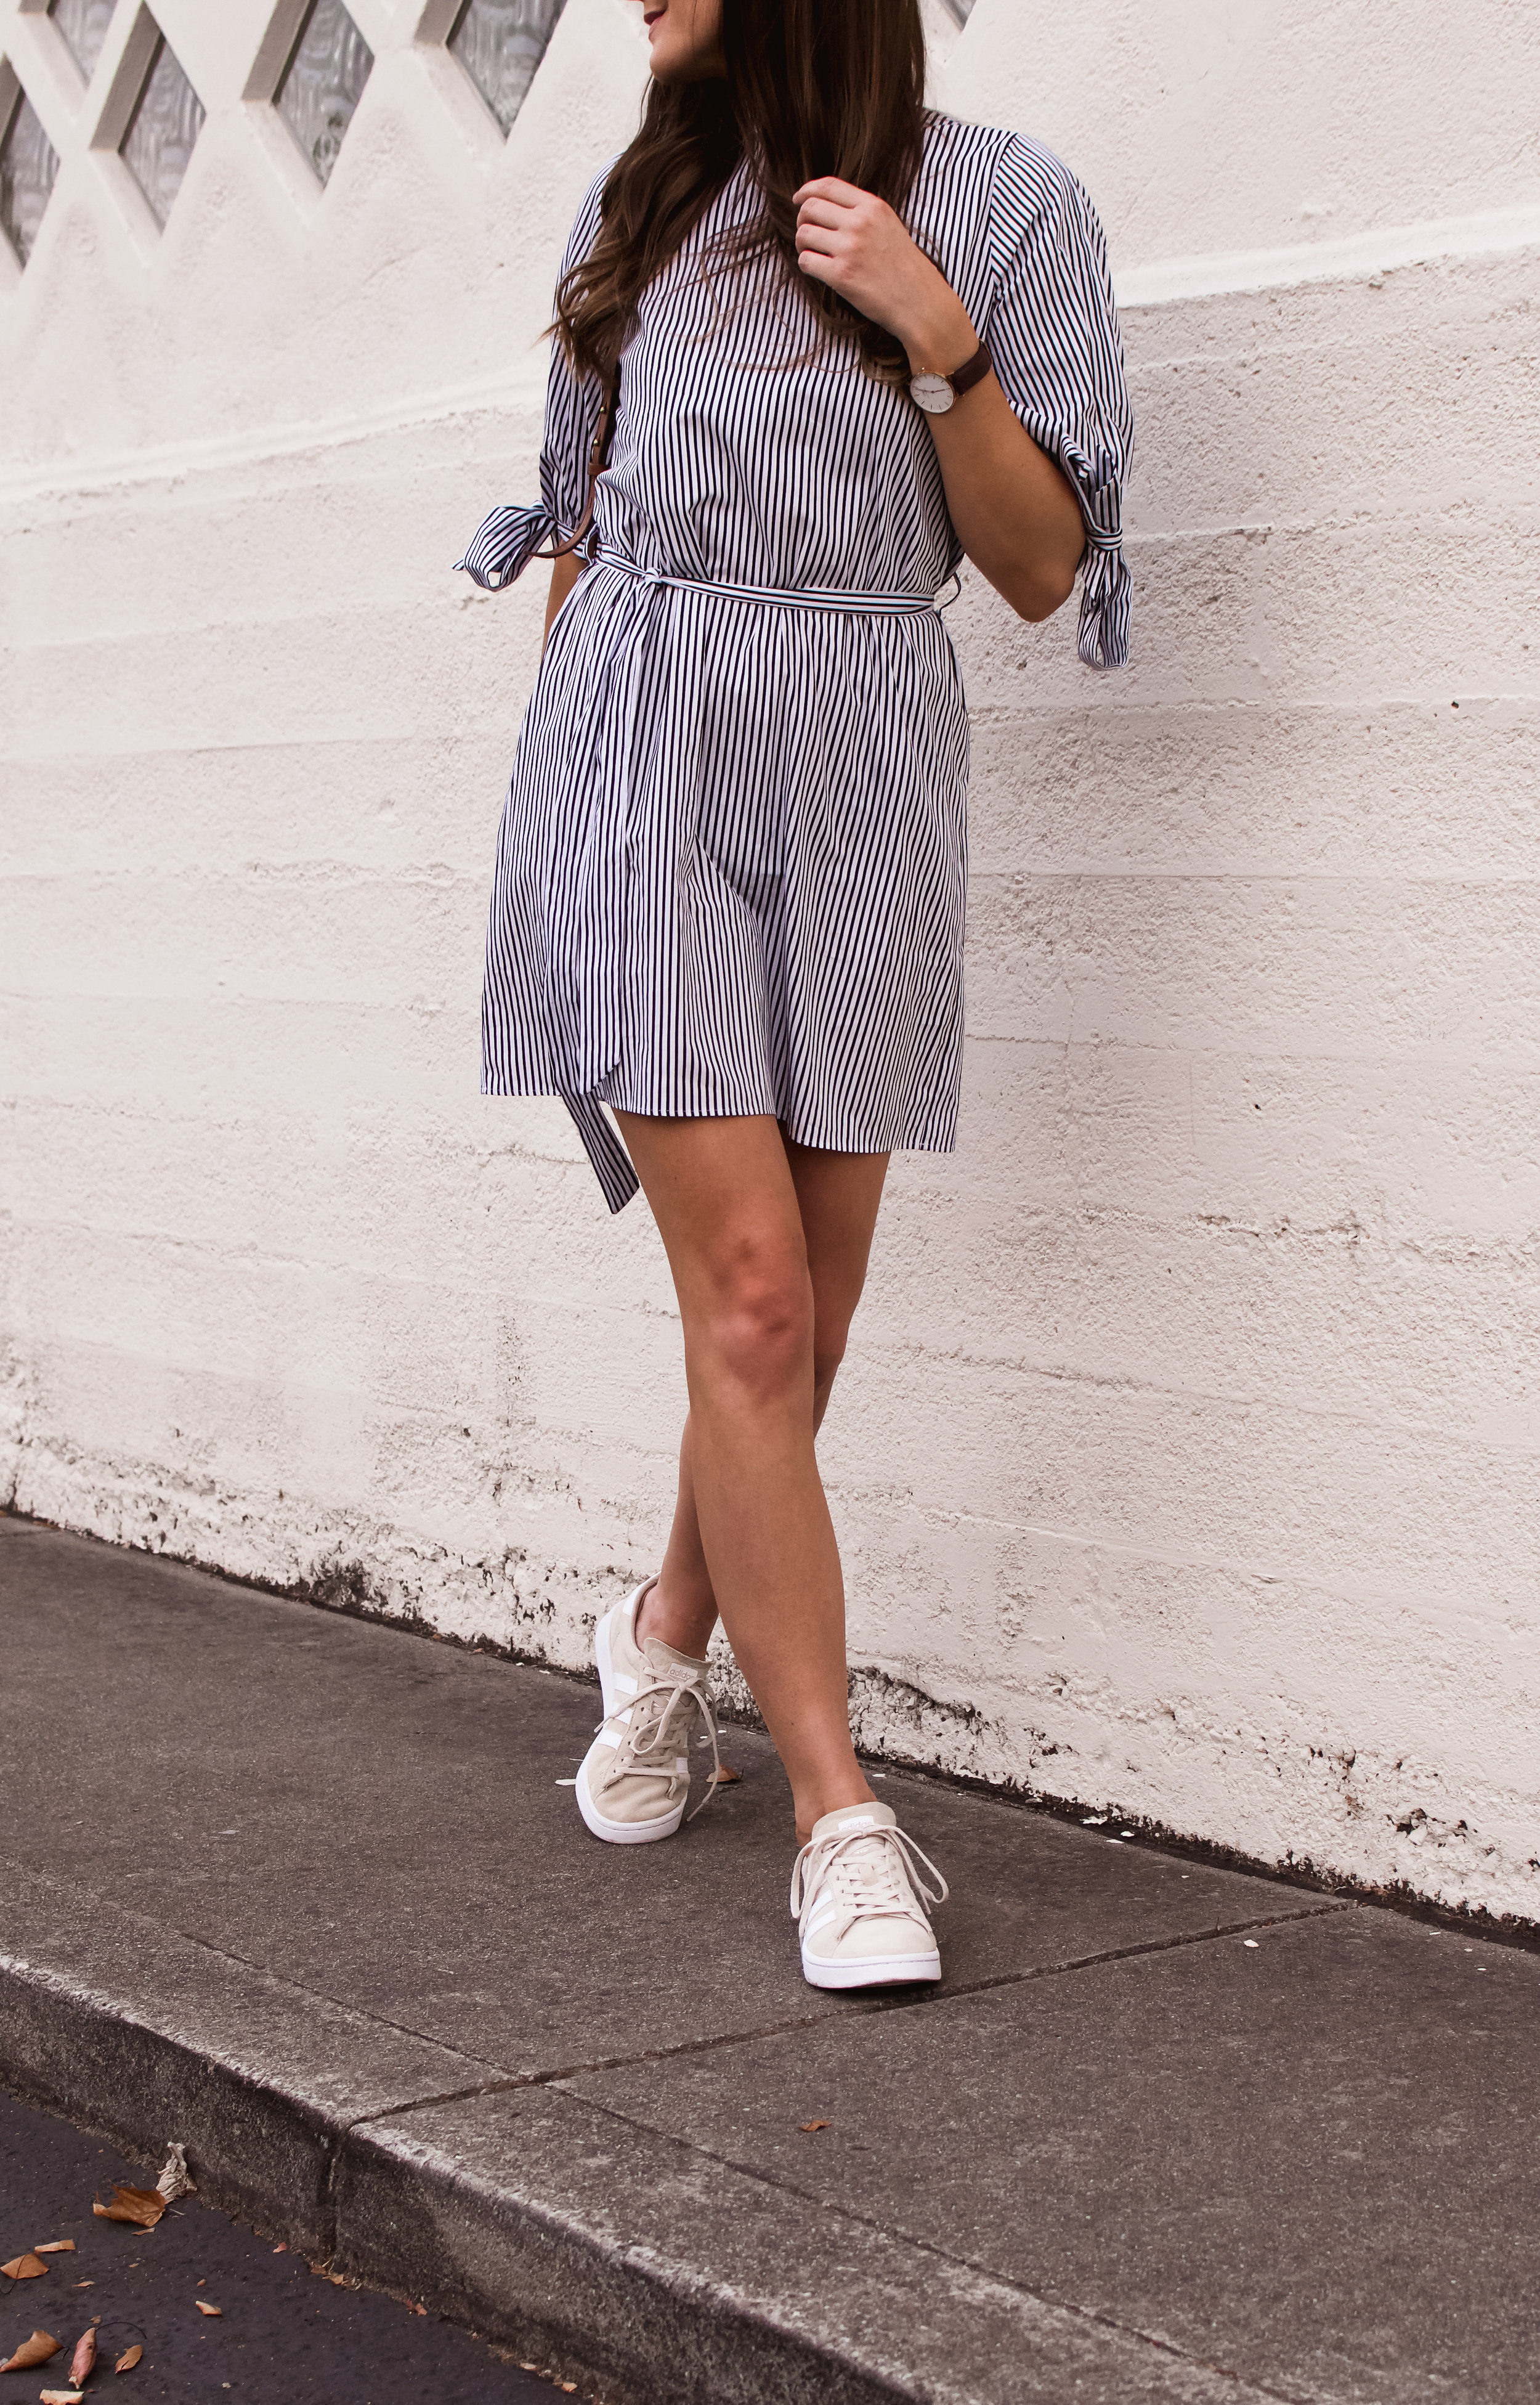 dress and sneakers